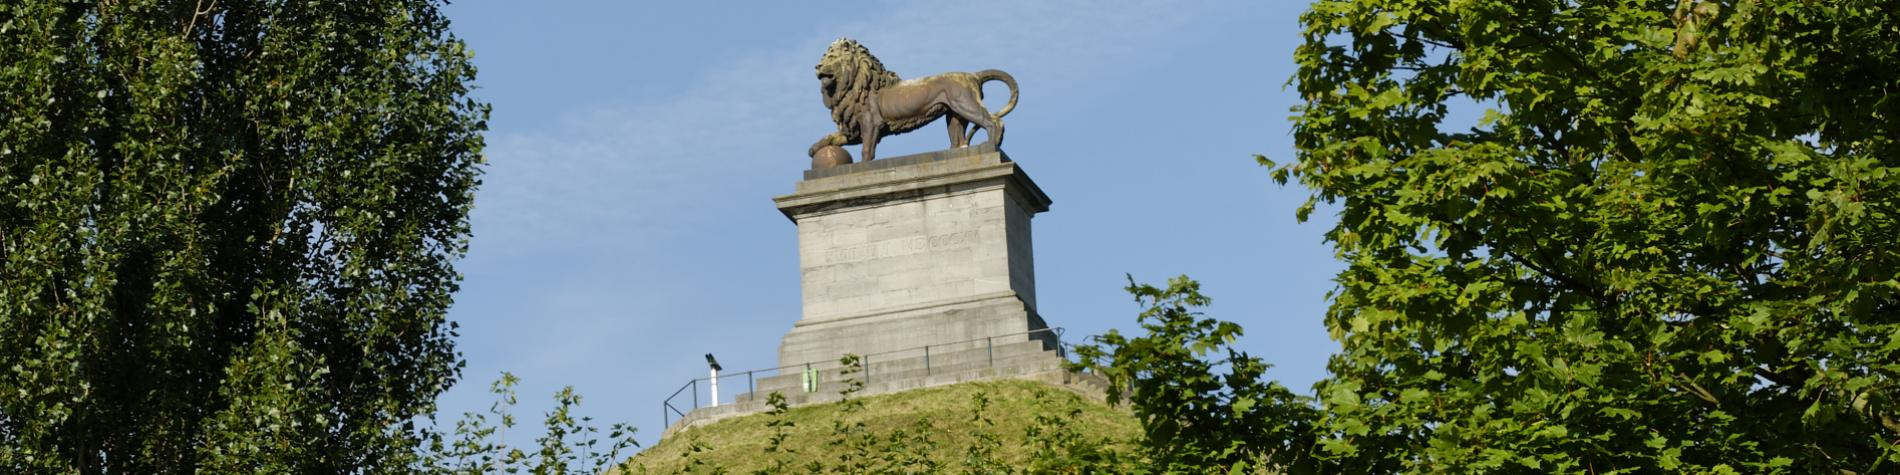 Admire the famous Lion's Mound in Waterloo